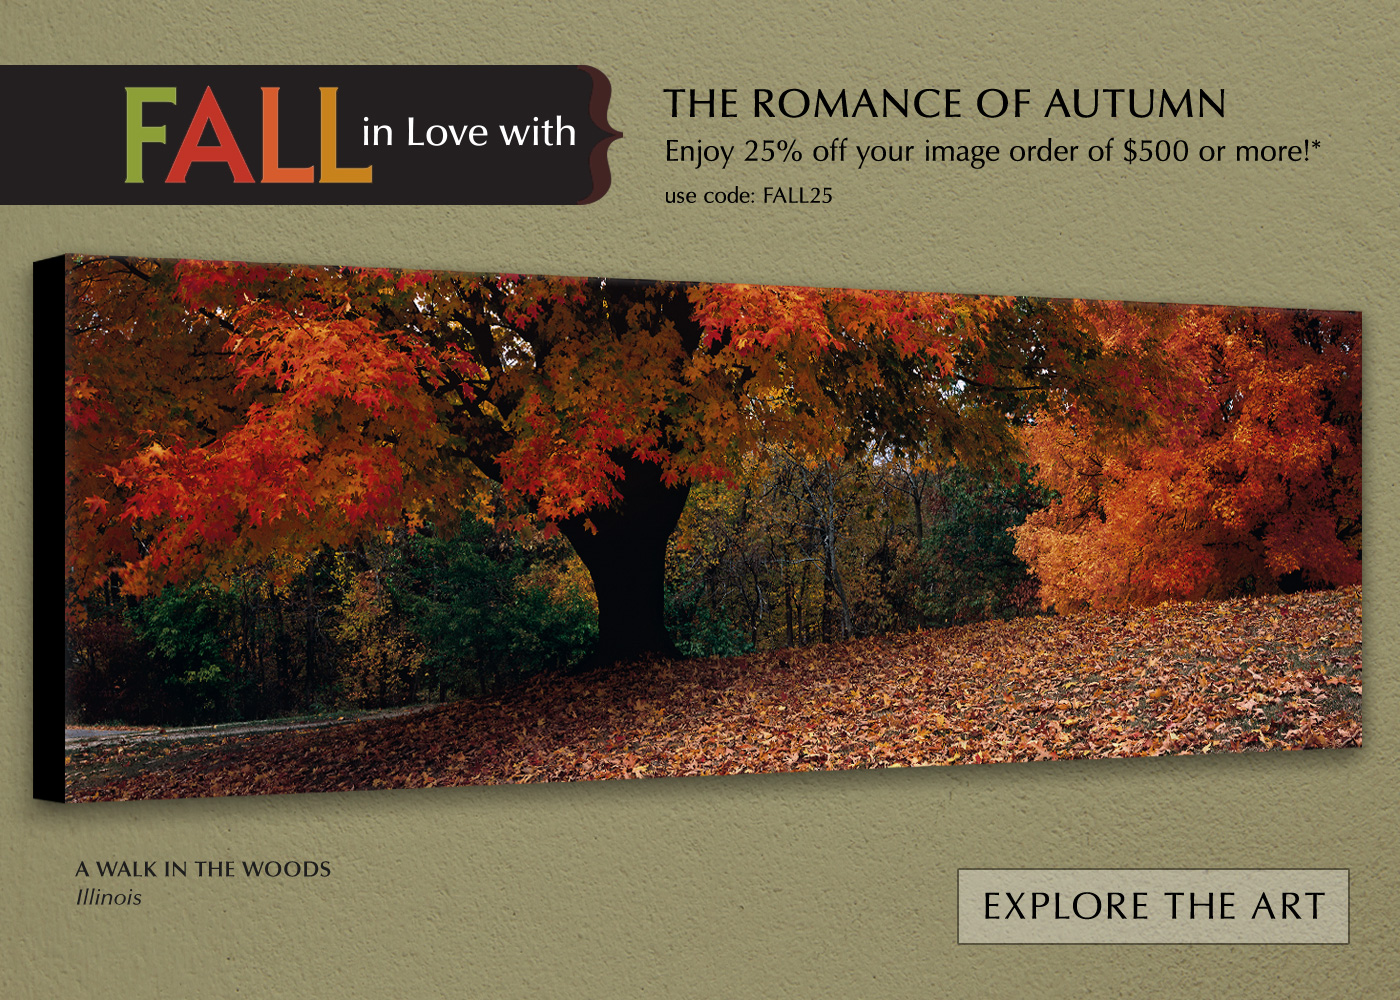 FALL in Love with the Romance of Autumn